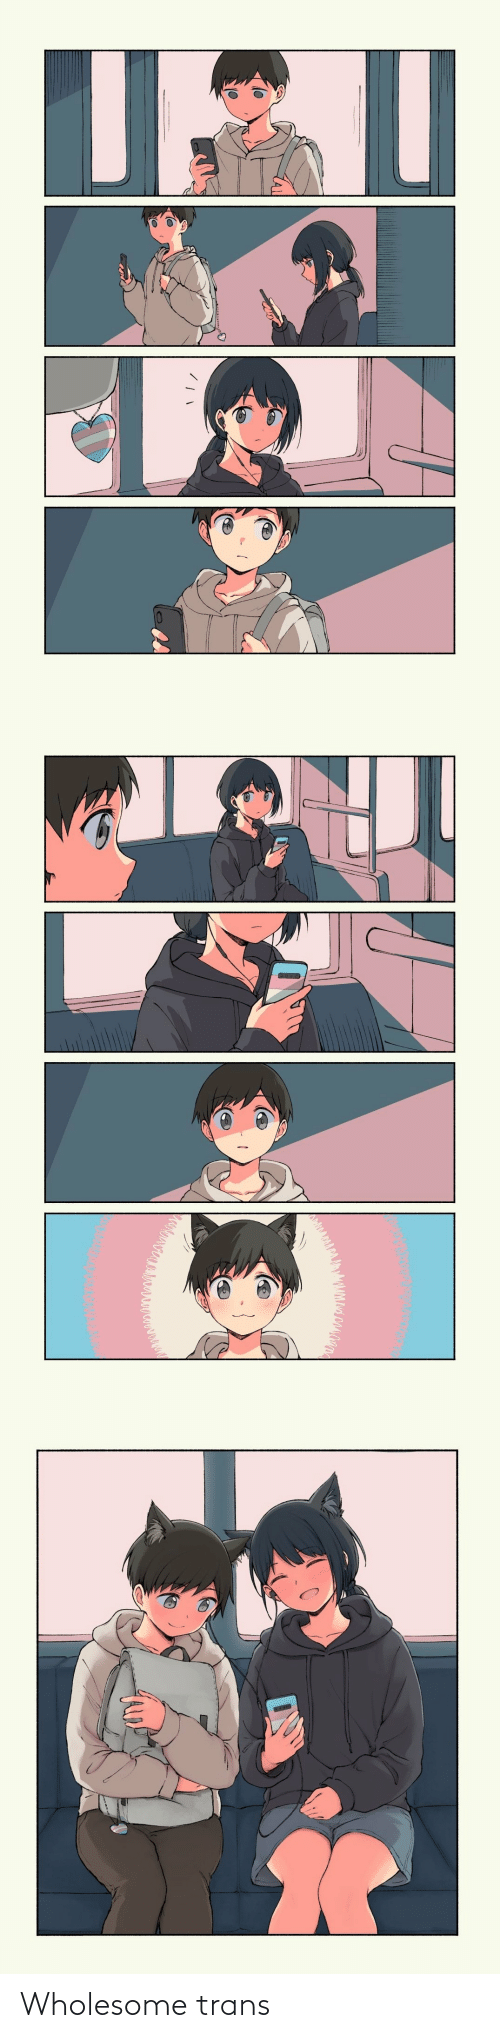 Wholesome: Wholesome trans